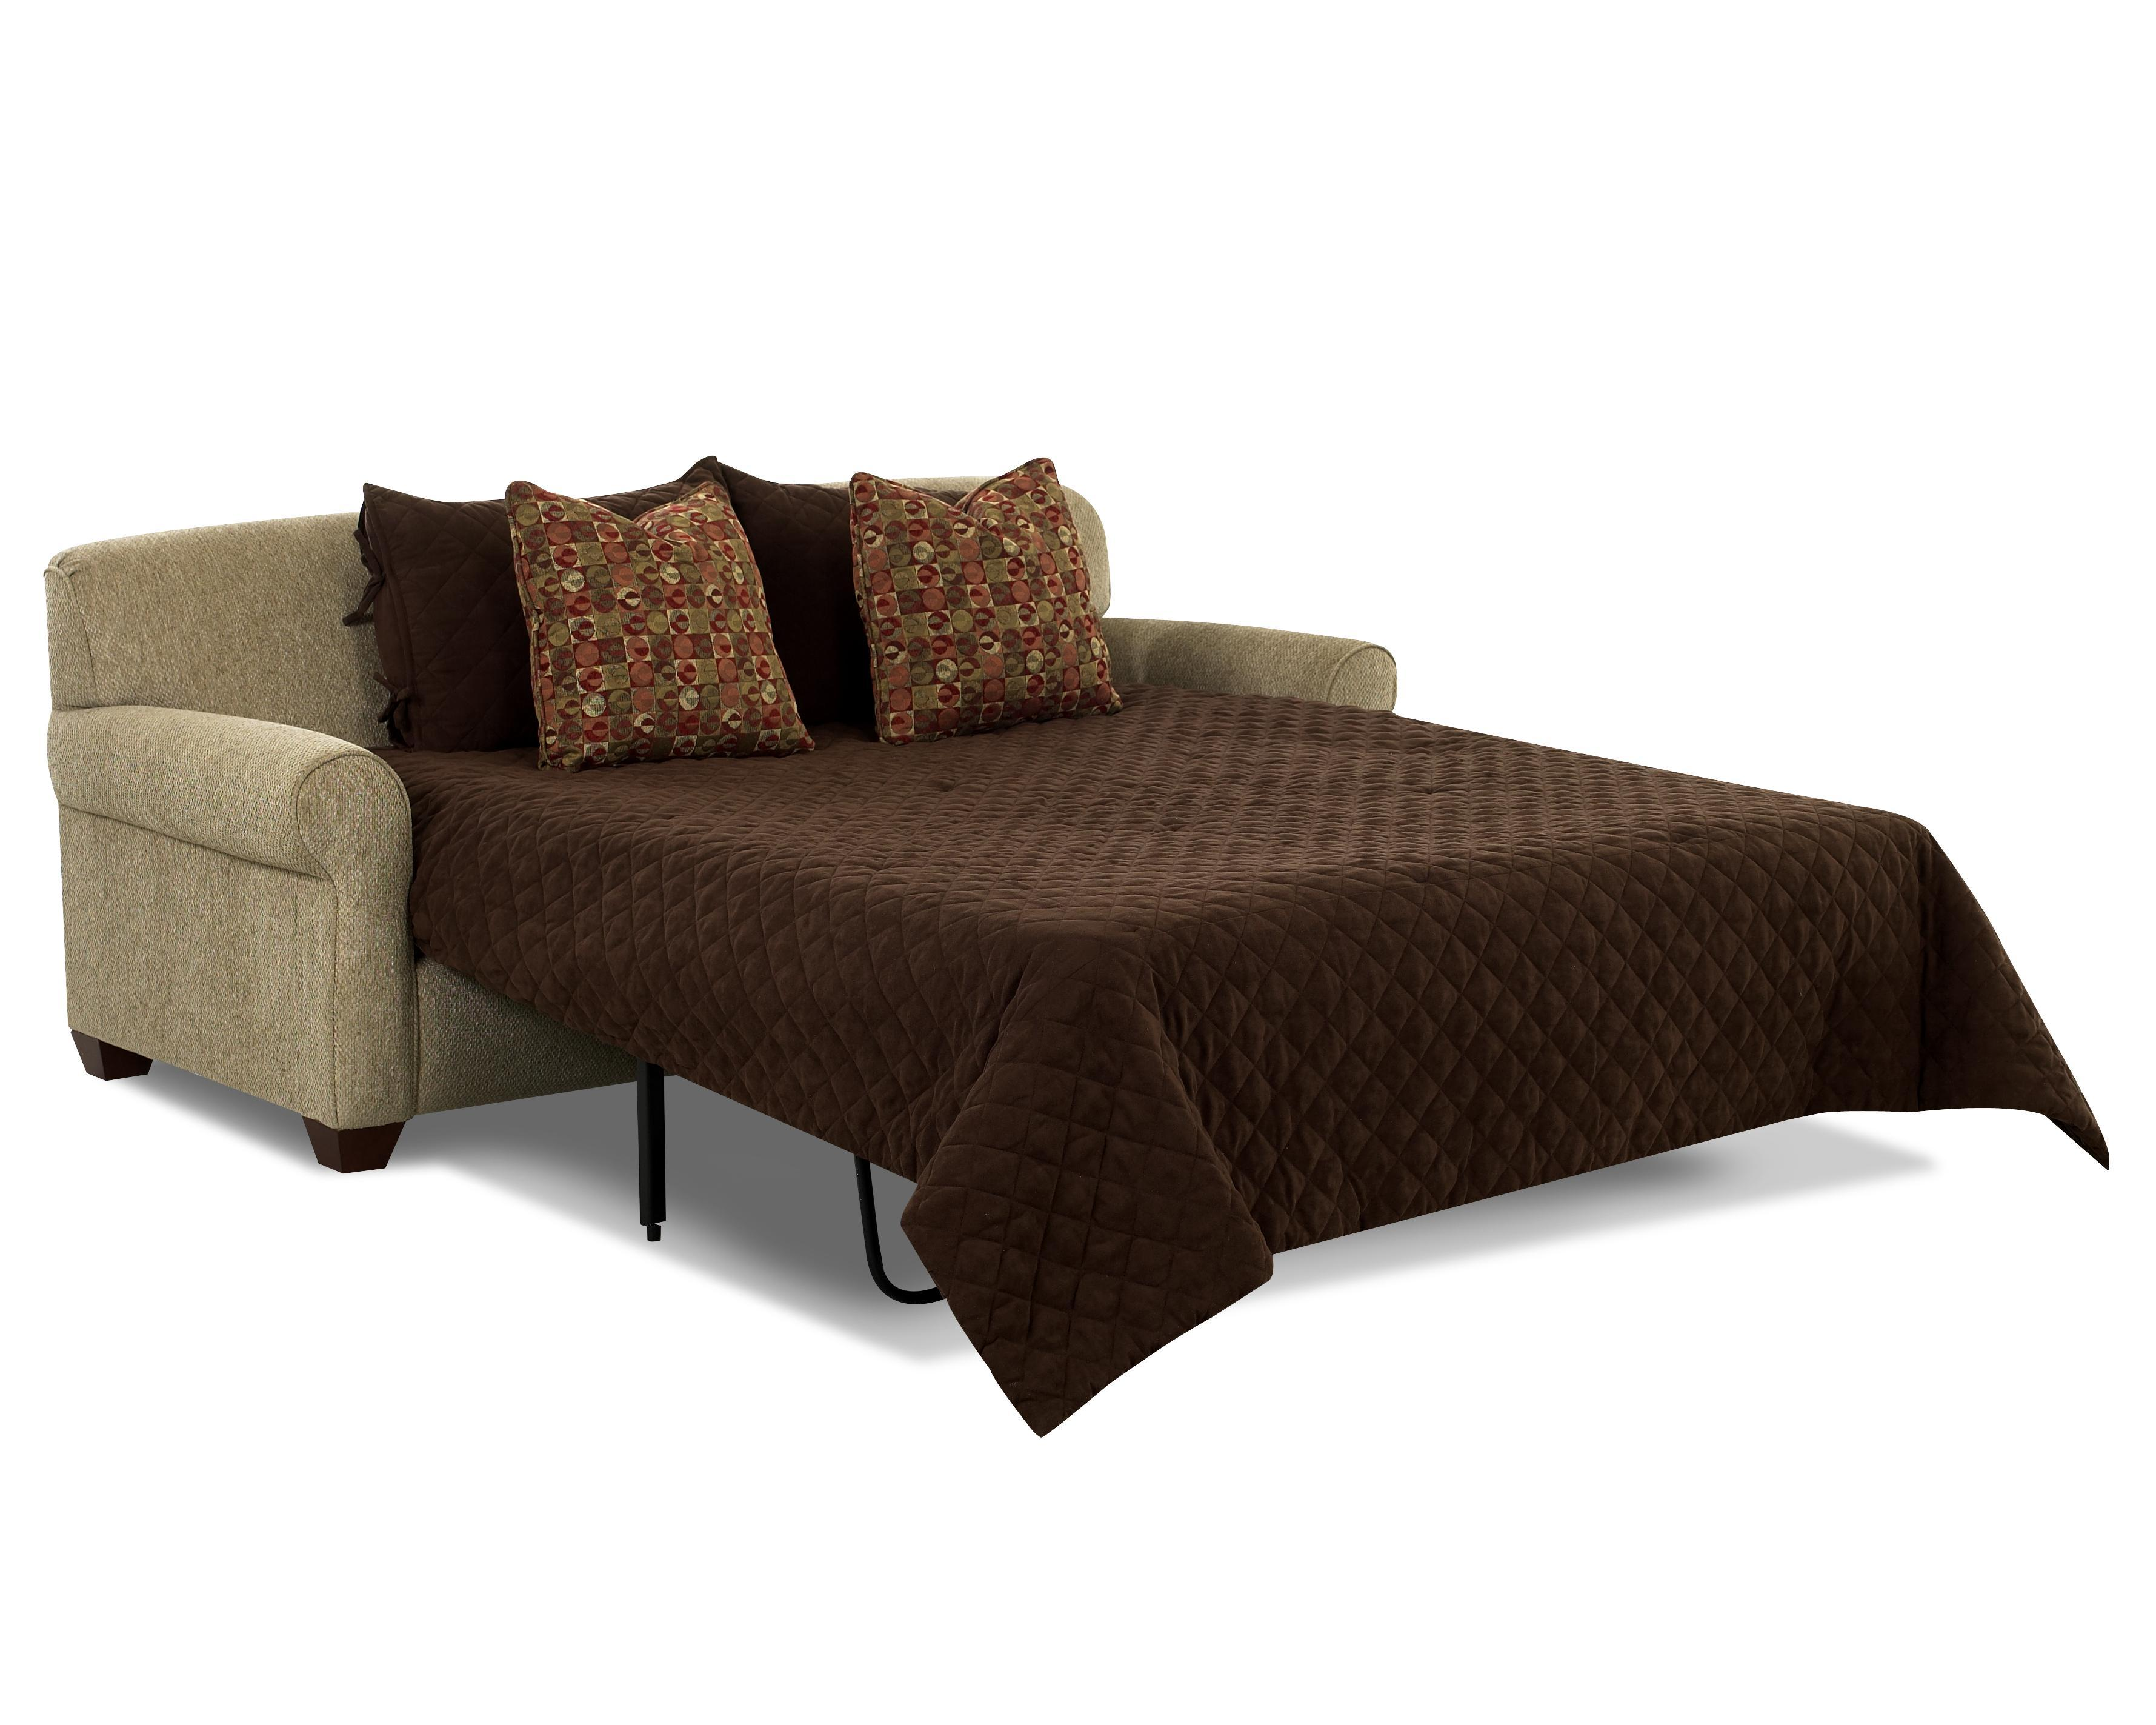 Mayhew Dreamquest Queen Sleeper by Klaussner at Northeast Factory Direct